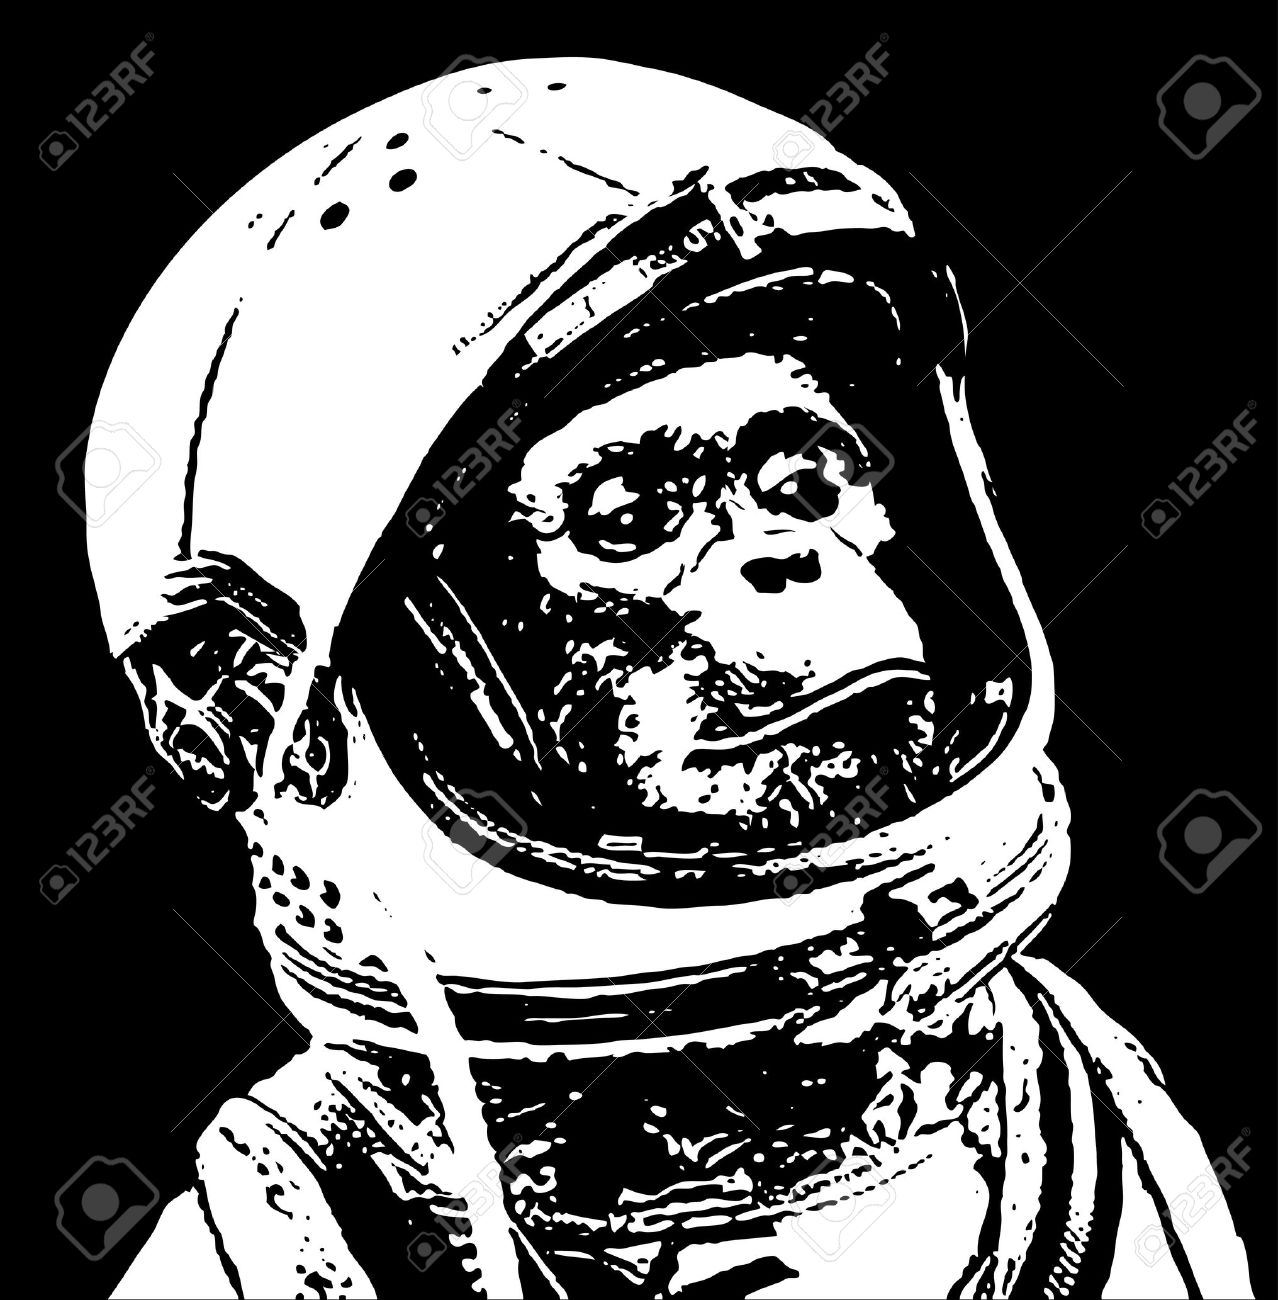 chimp in space stencil art royalty free cliparts vectors and stock